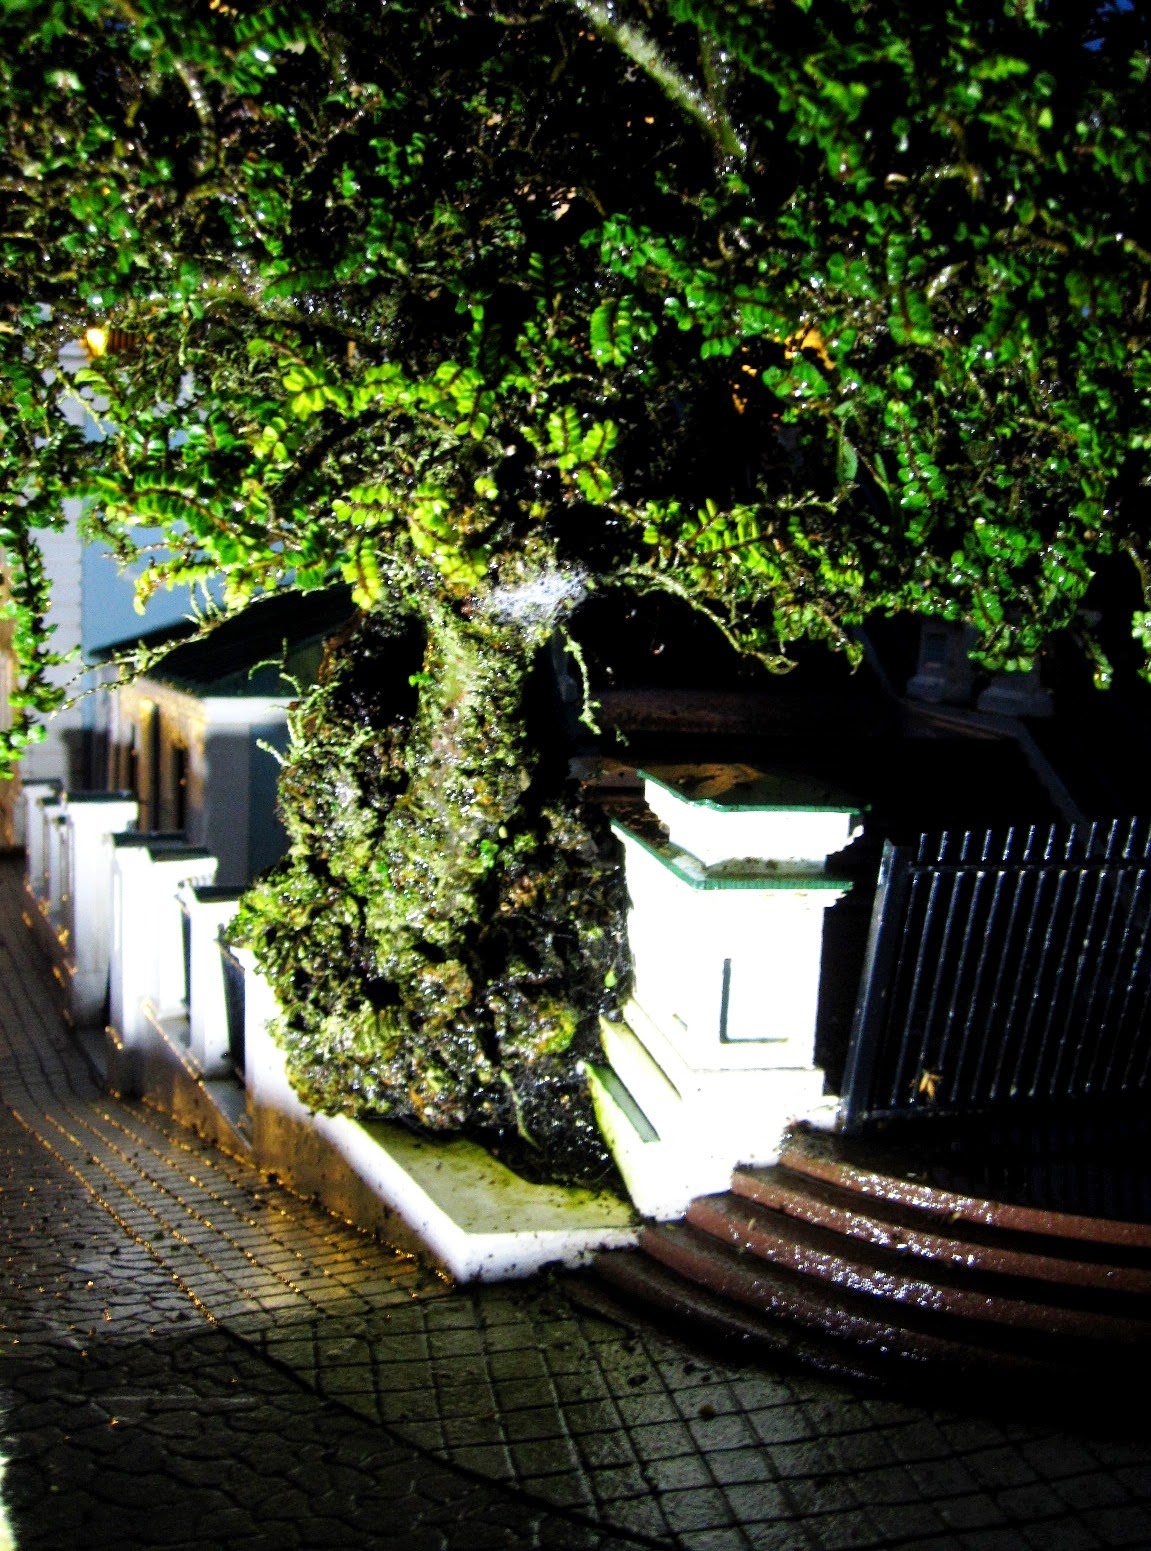 Miniature model street scene of a tree and a concrete wall on a hill in the rain.